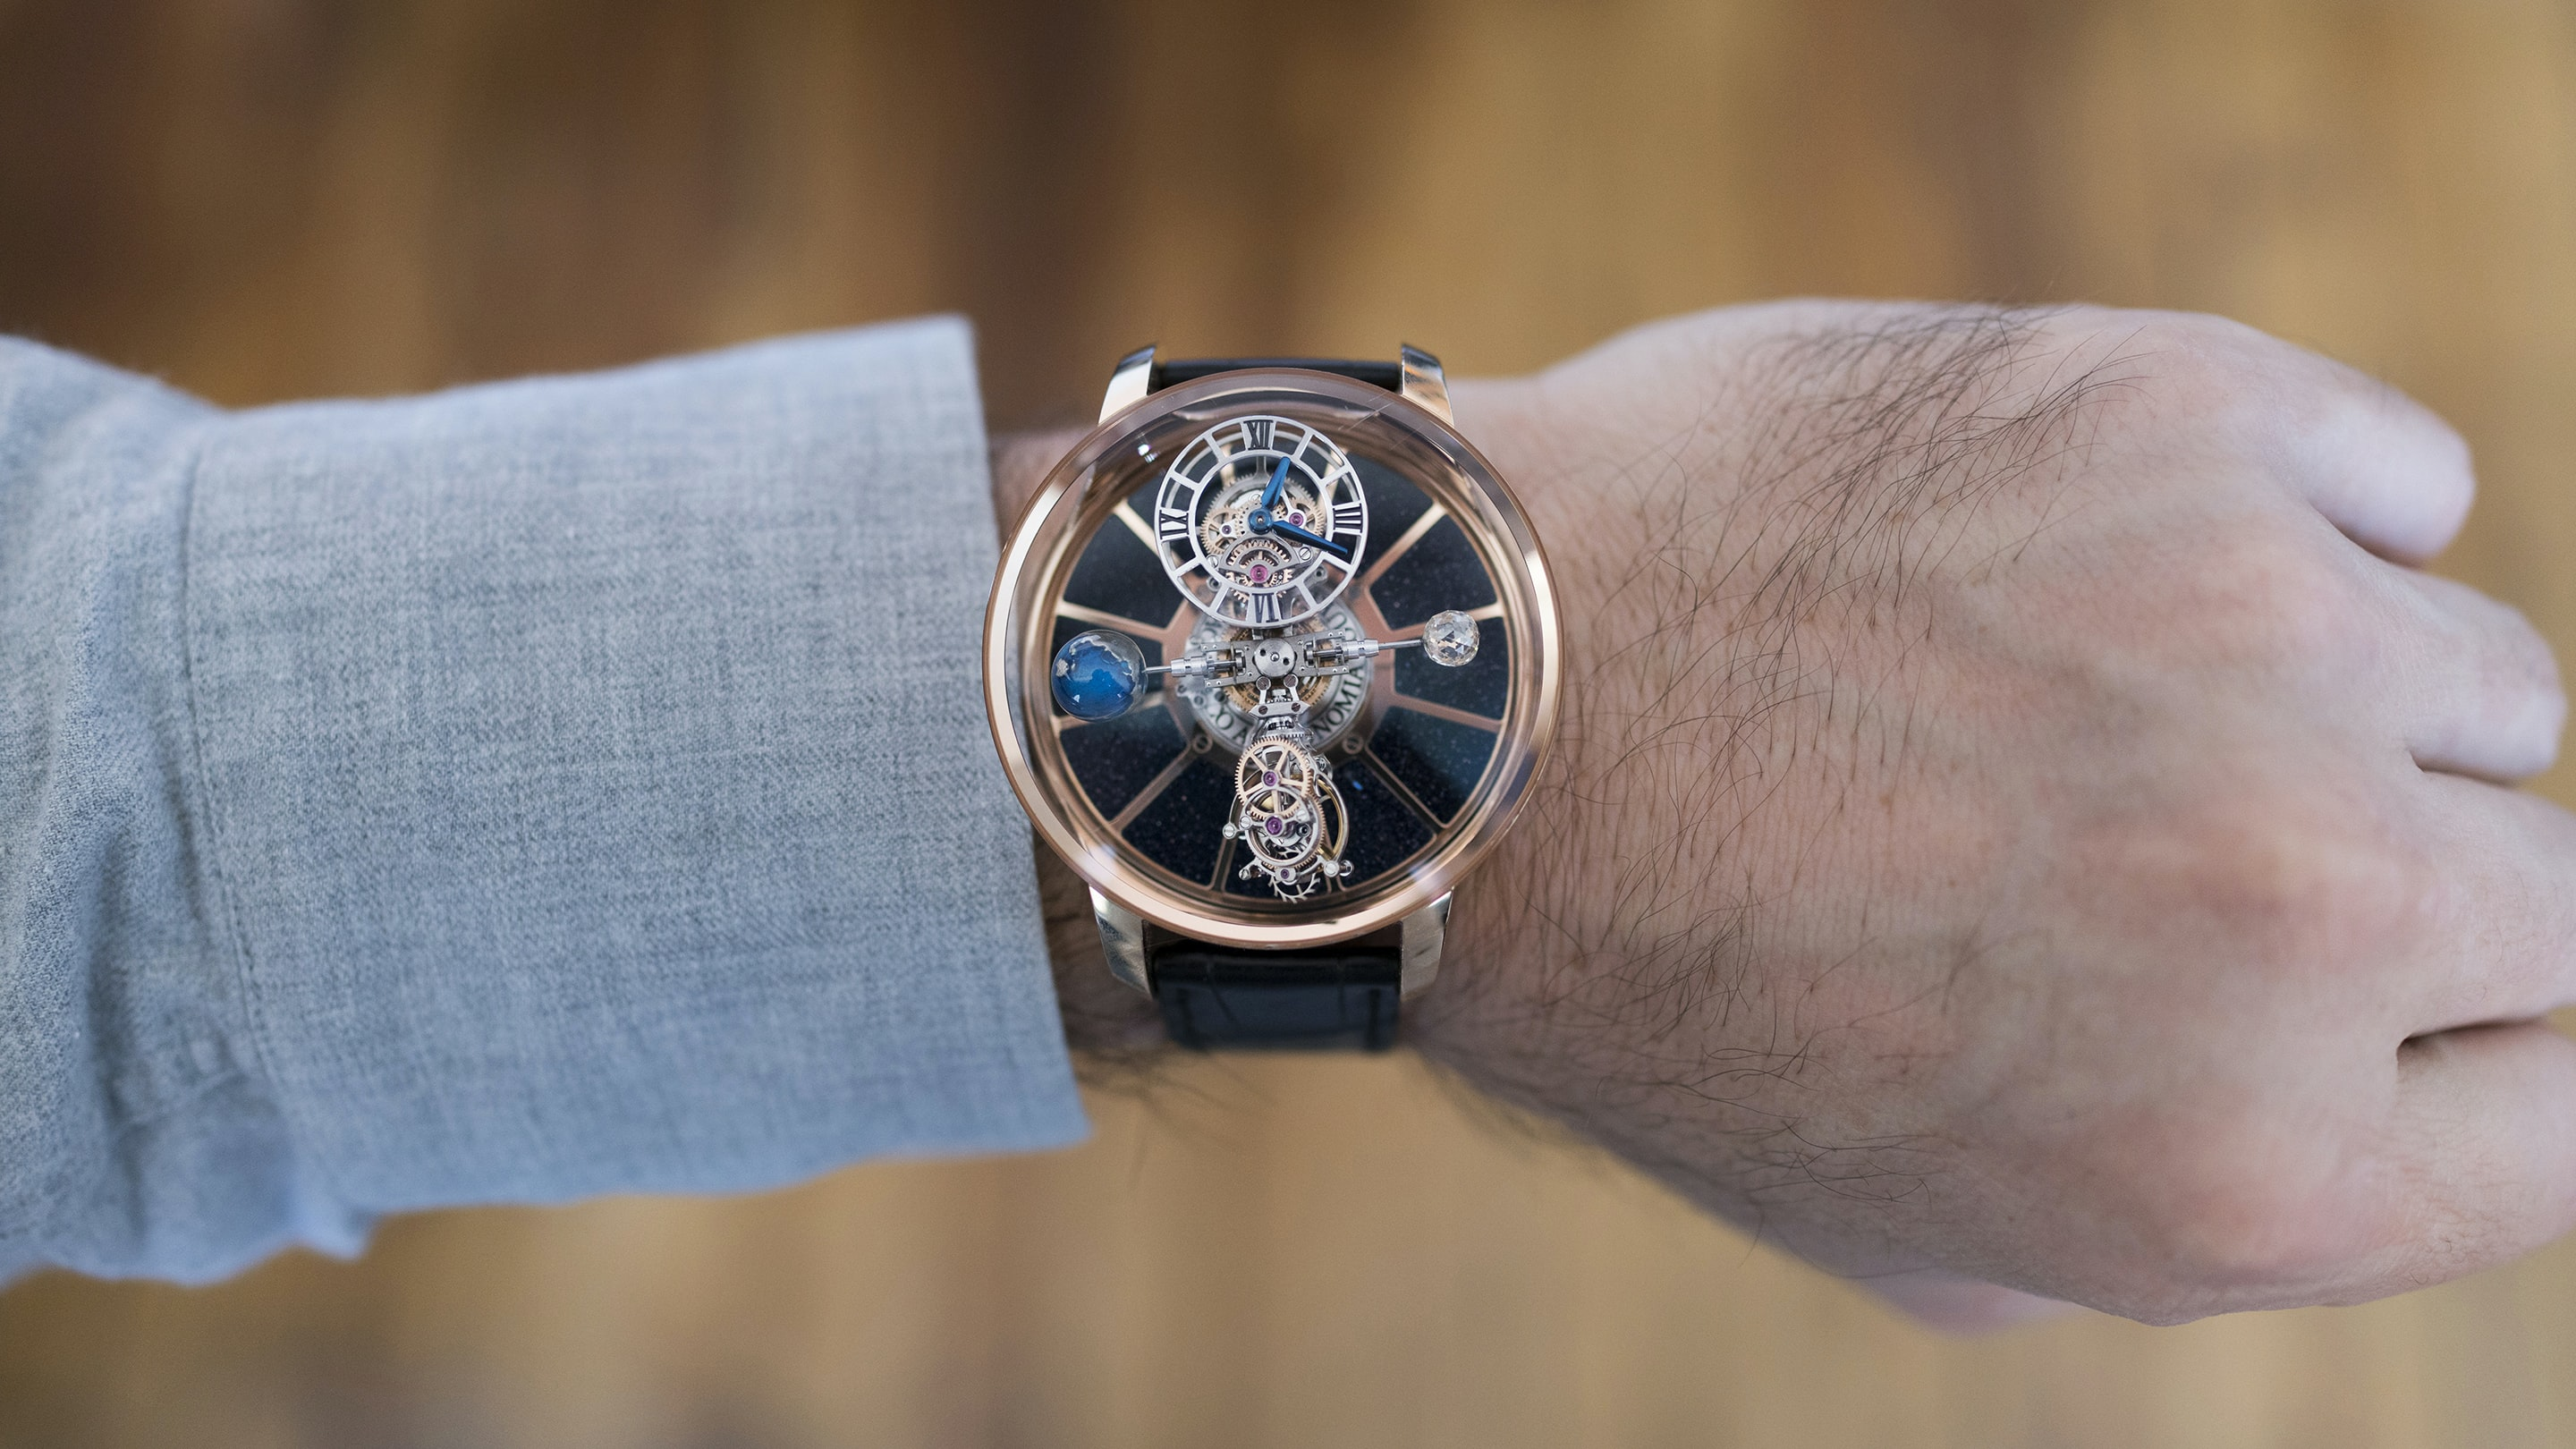 The HODINKEE 2016 Video Year In Review The HODINKEE 2016 Video Year In Review 2